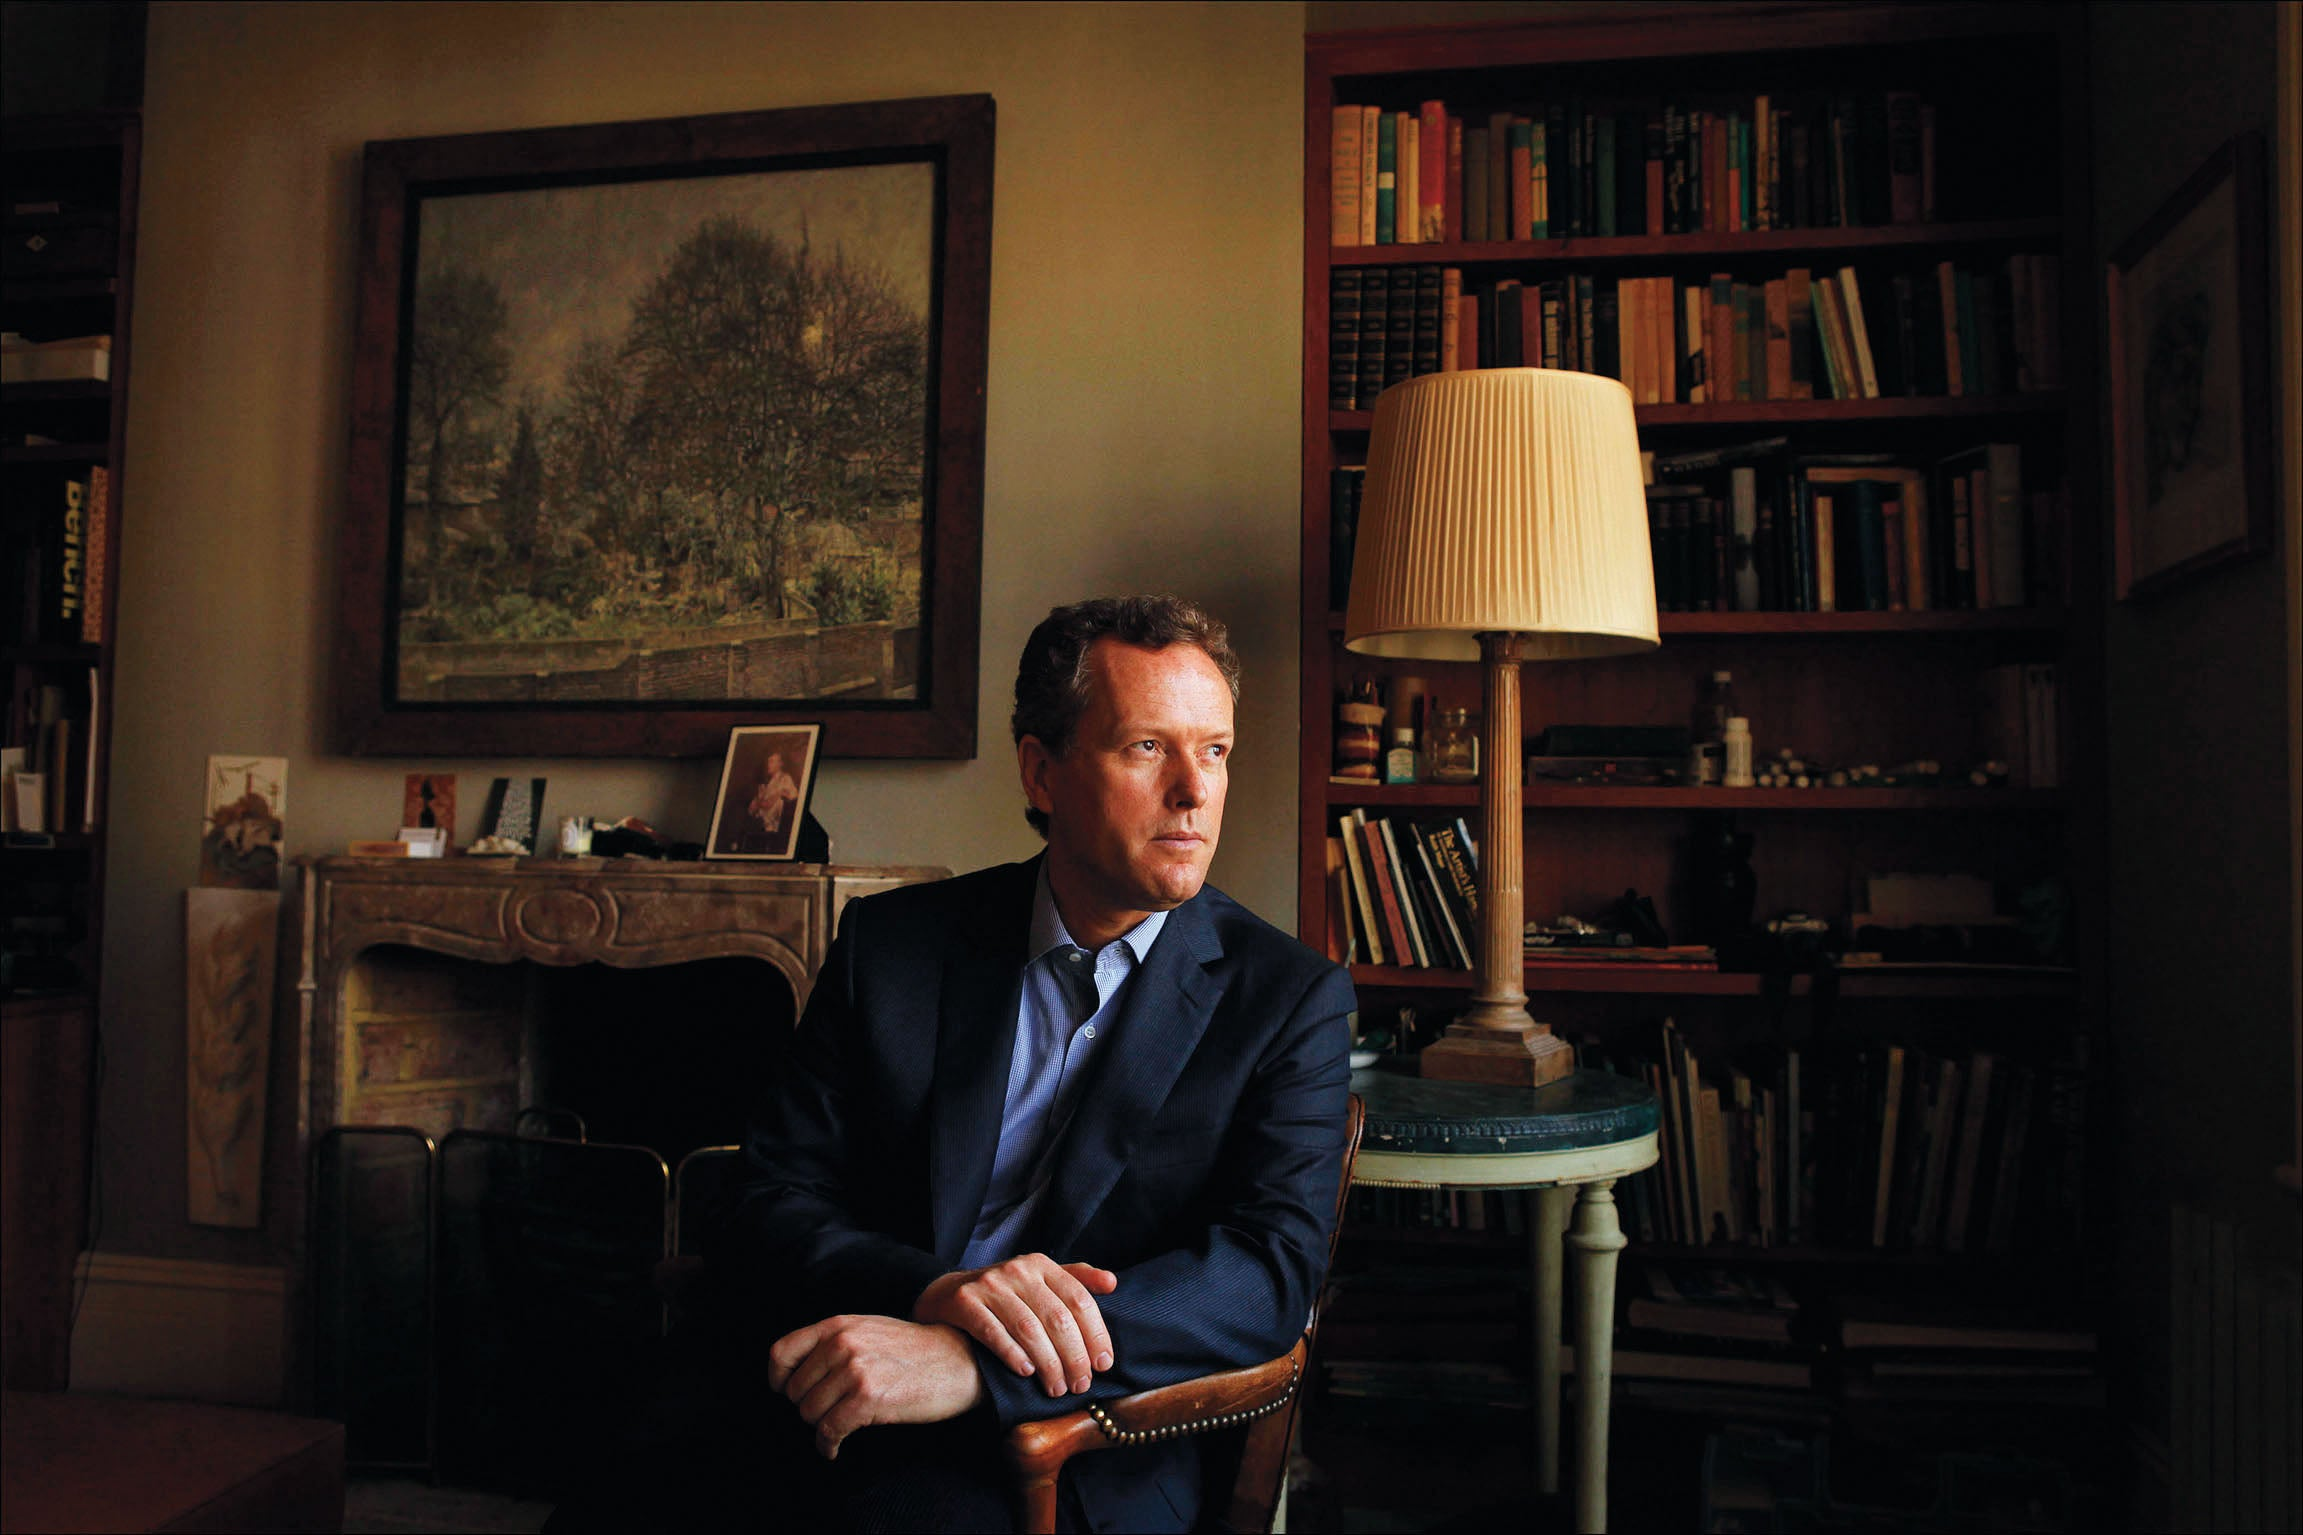 Edward St Aubyn's Double Blind is a clumsy critique of modern science